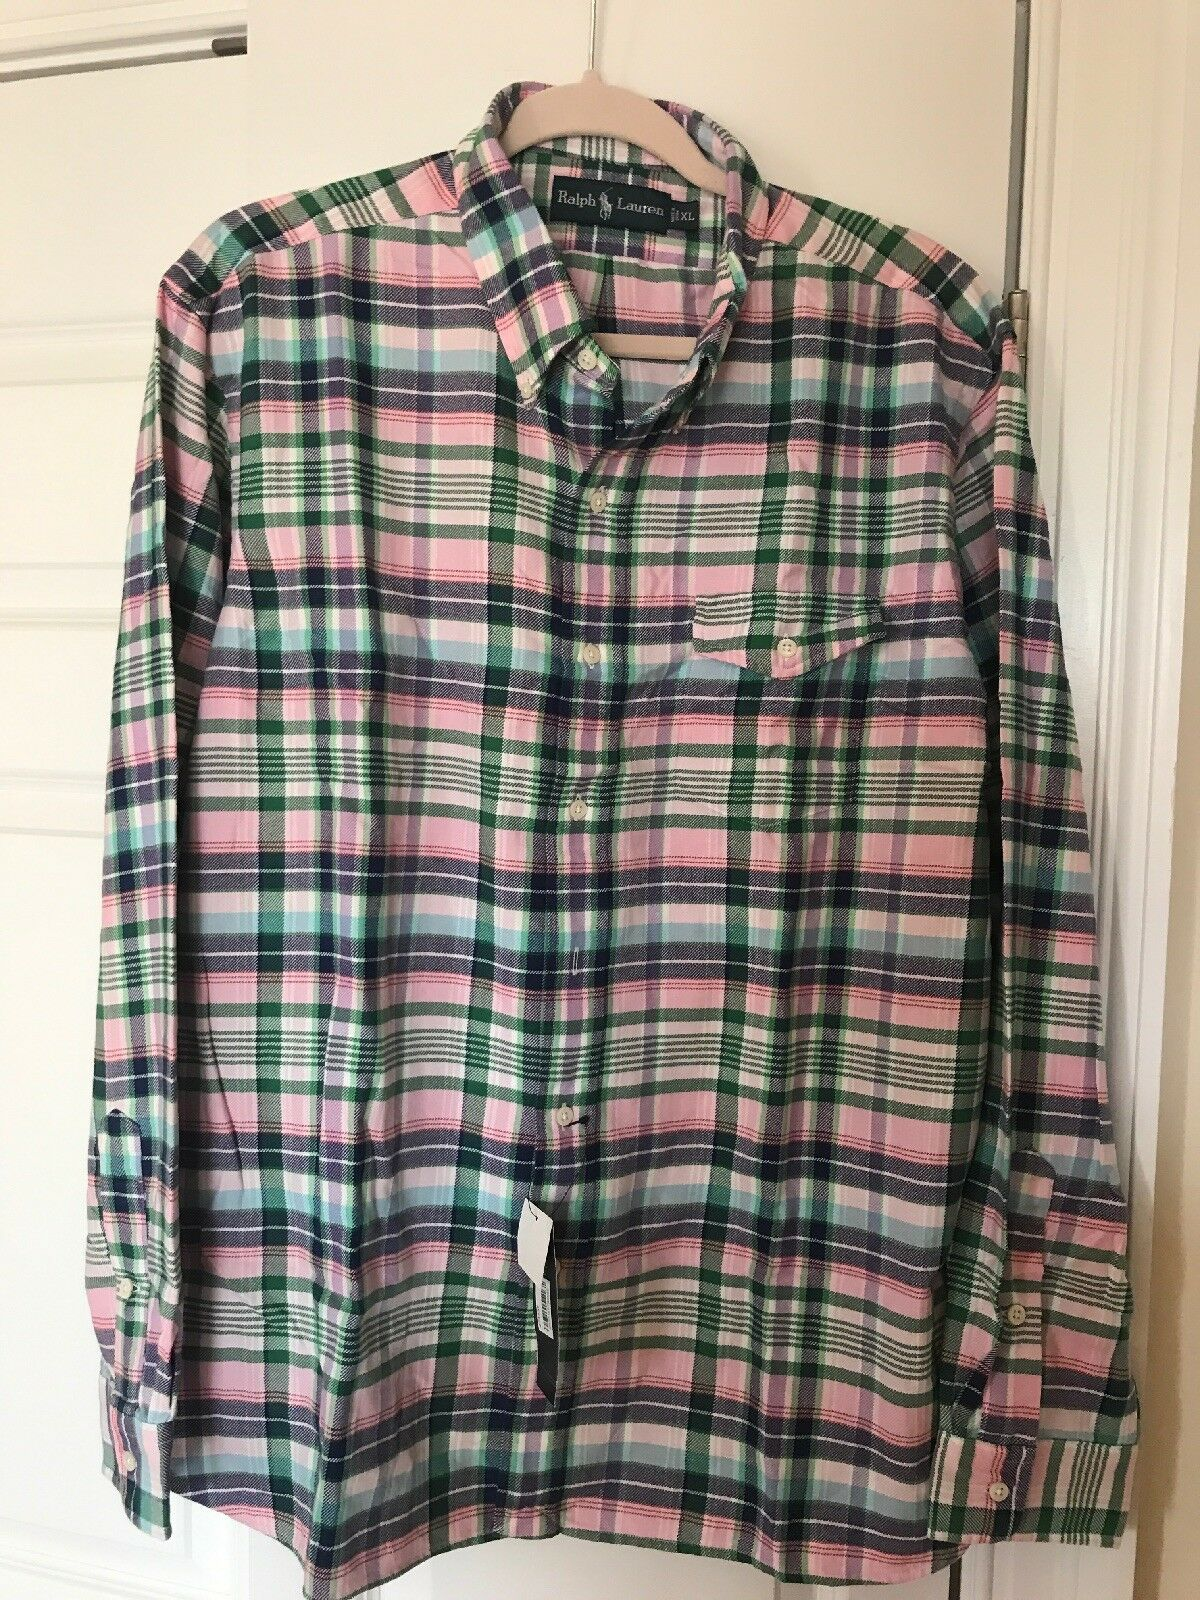 Polo Ralph Lauren men plaid shirt size XL